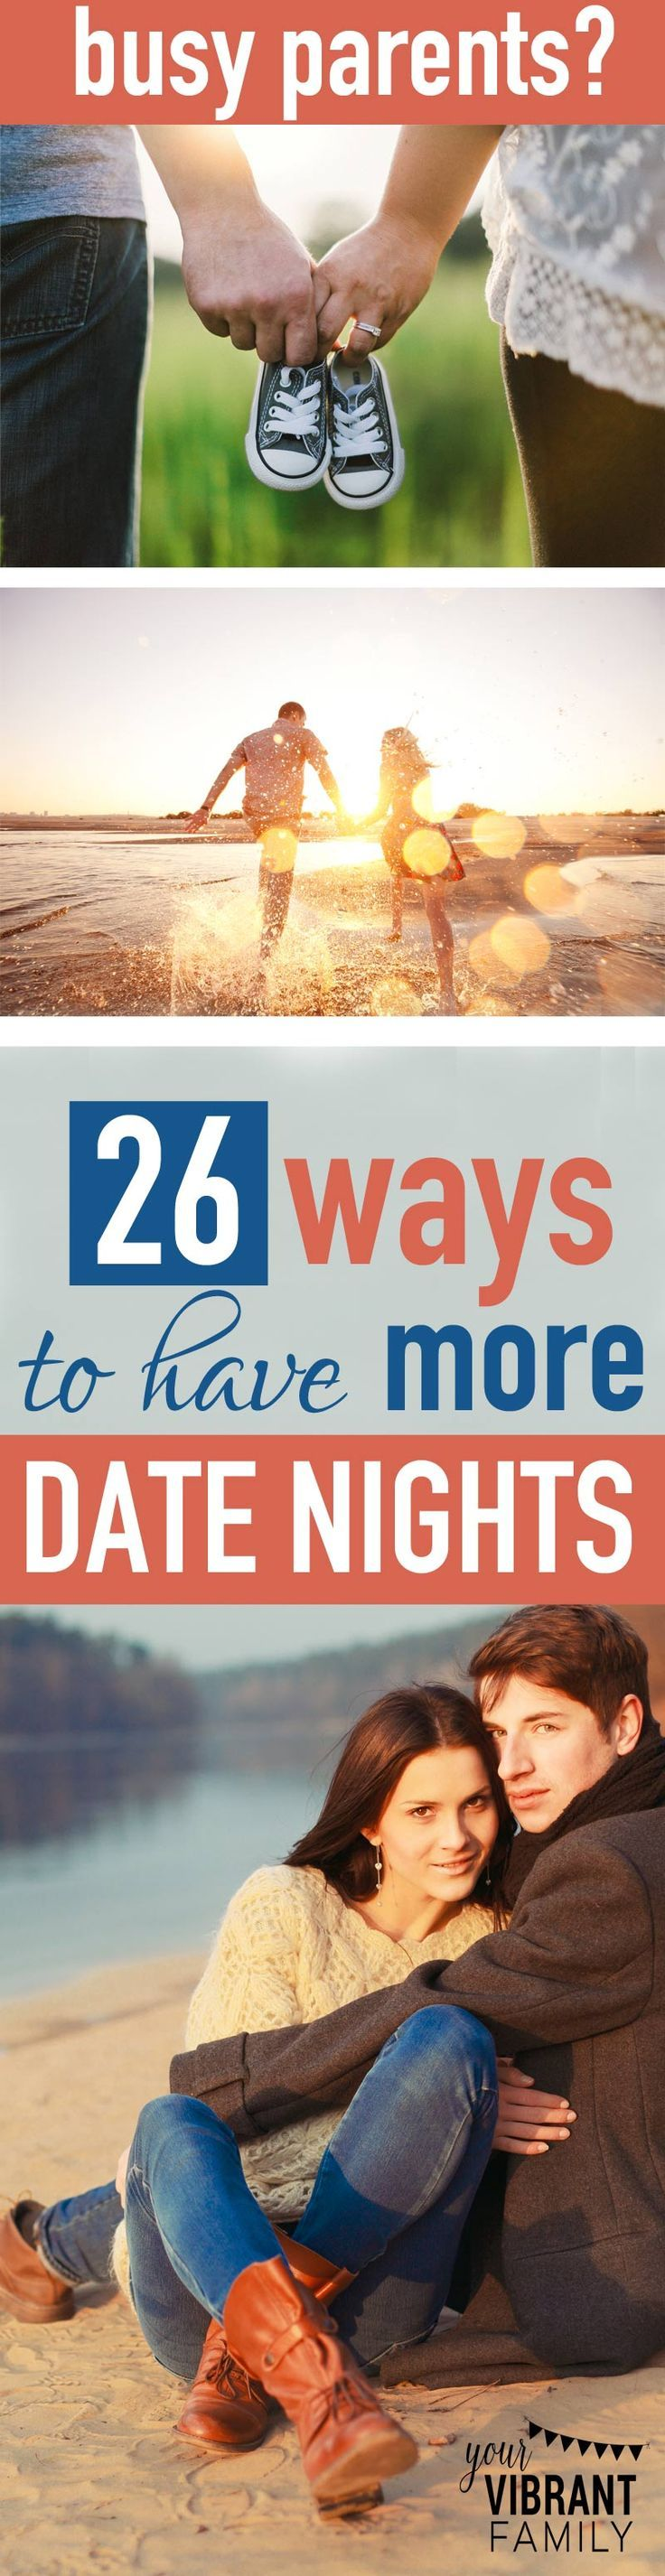 You know date nights can really strengthen your marriage. But how in the world…